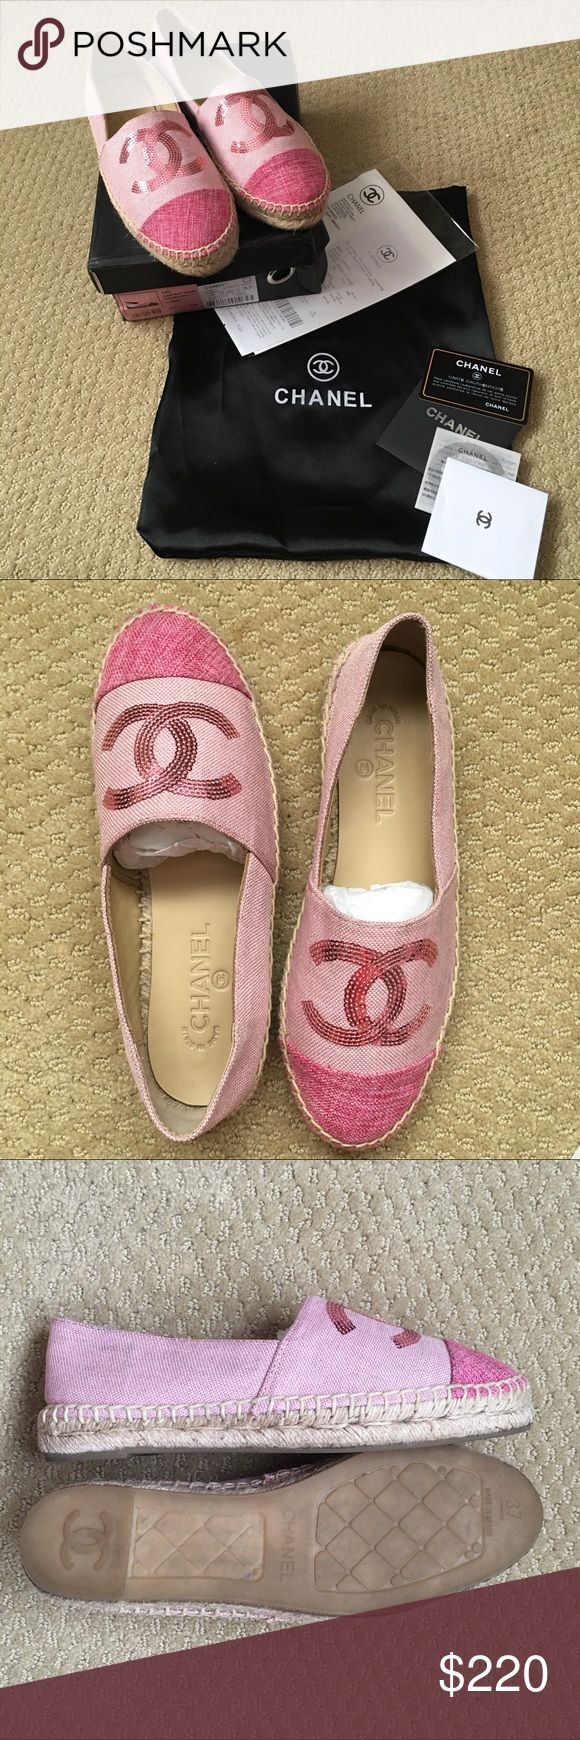 Chanel Espadrille PLEASE READ CAREFULLY** Chanel espadrille pink sequin. Used once. Size 37 fits size 6 comfortably, 24cm insole. Very clean. RFS:  I wear a size 7 but this shoe fits me a little tight but can be tried to stretch a little more or constantly use it. Chanel sizes runs small. AUTHENTIC GRADE. Comparable with the original chanel.Price reflects.Can provide closer photos.Wouldnt sell this if it fits fine love this espadrilles! 😻 for more inquiries or photos message me or email me…